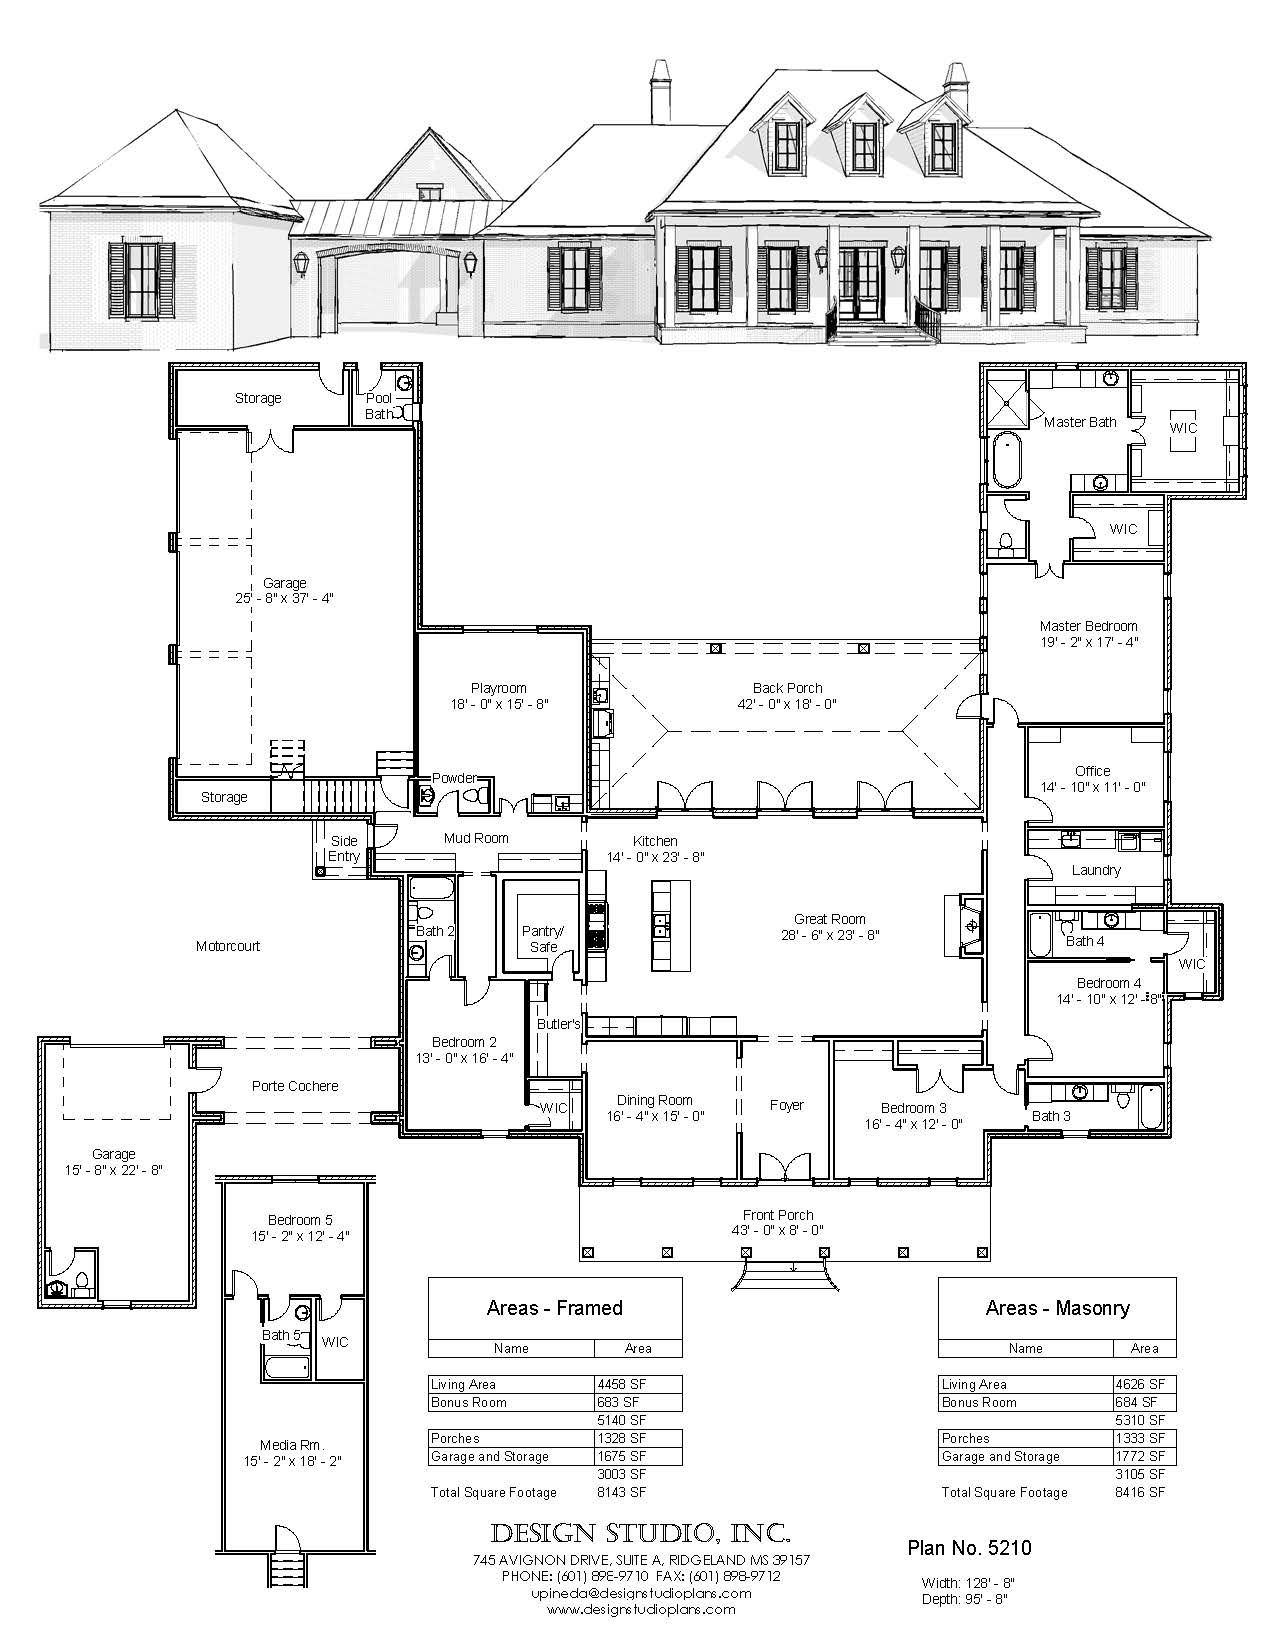 Plan 5210 Design Studio Southern House Plans House Layout Plans House Plans Mansion